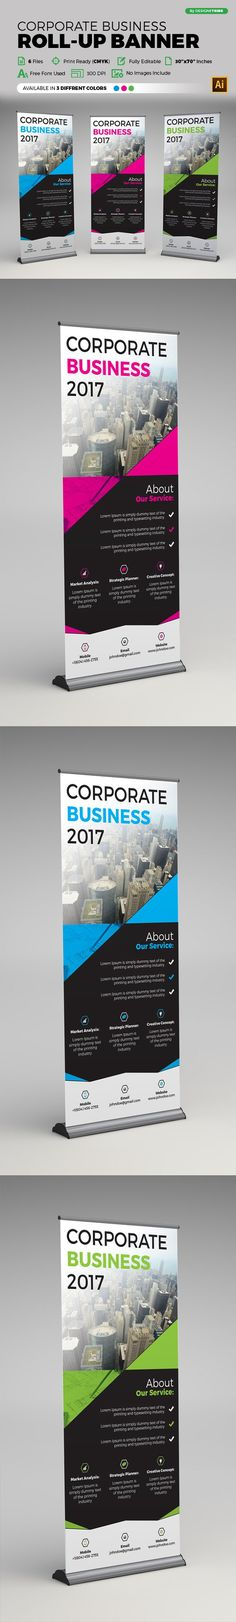 Corporate Roll Up Banner @creativework247